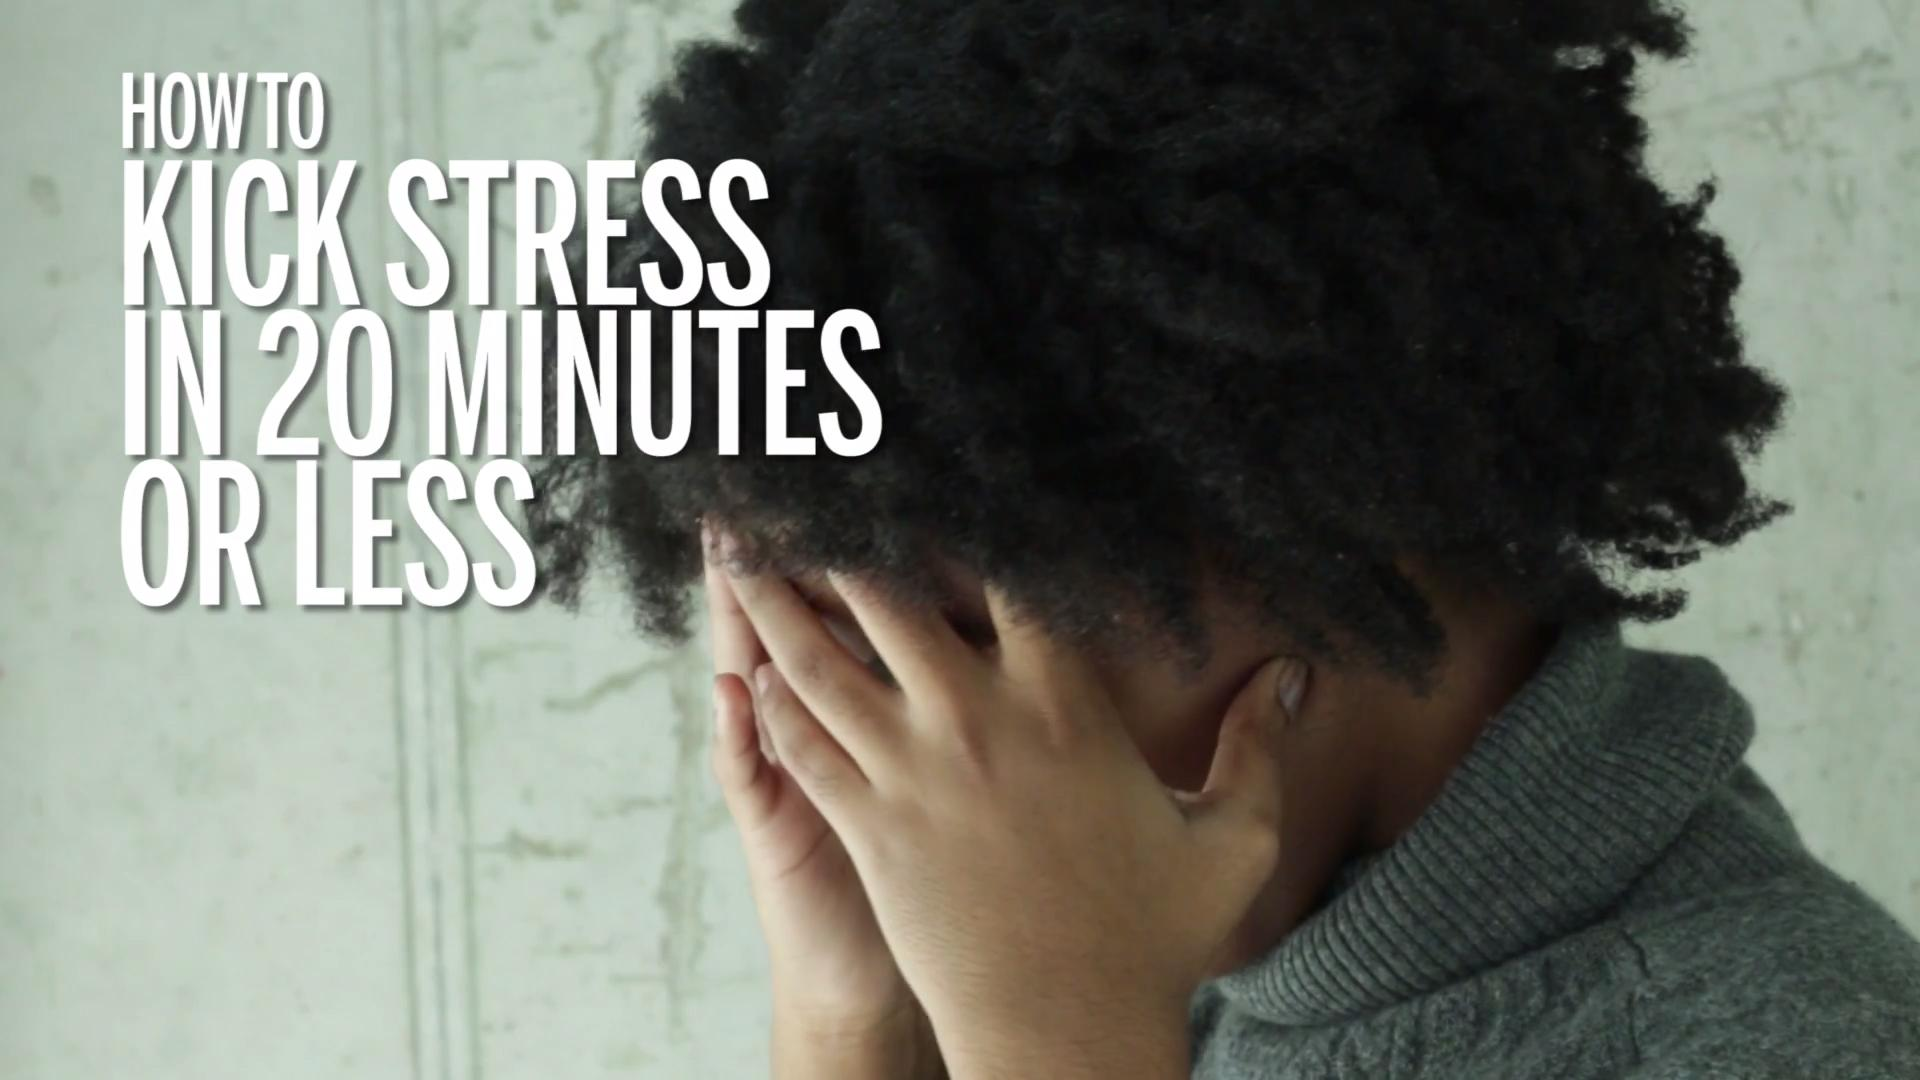 Surprising stress-busters